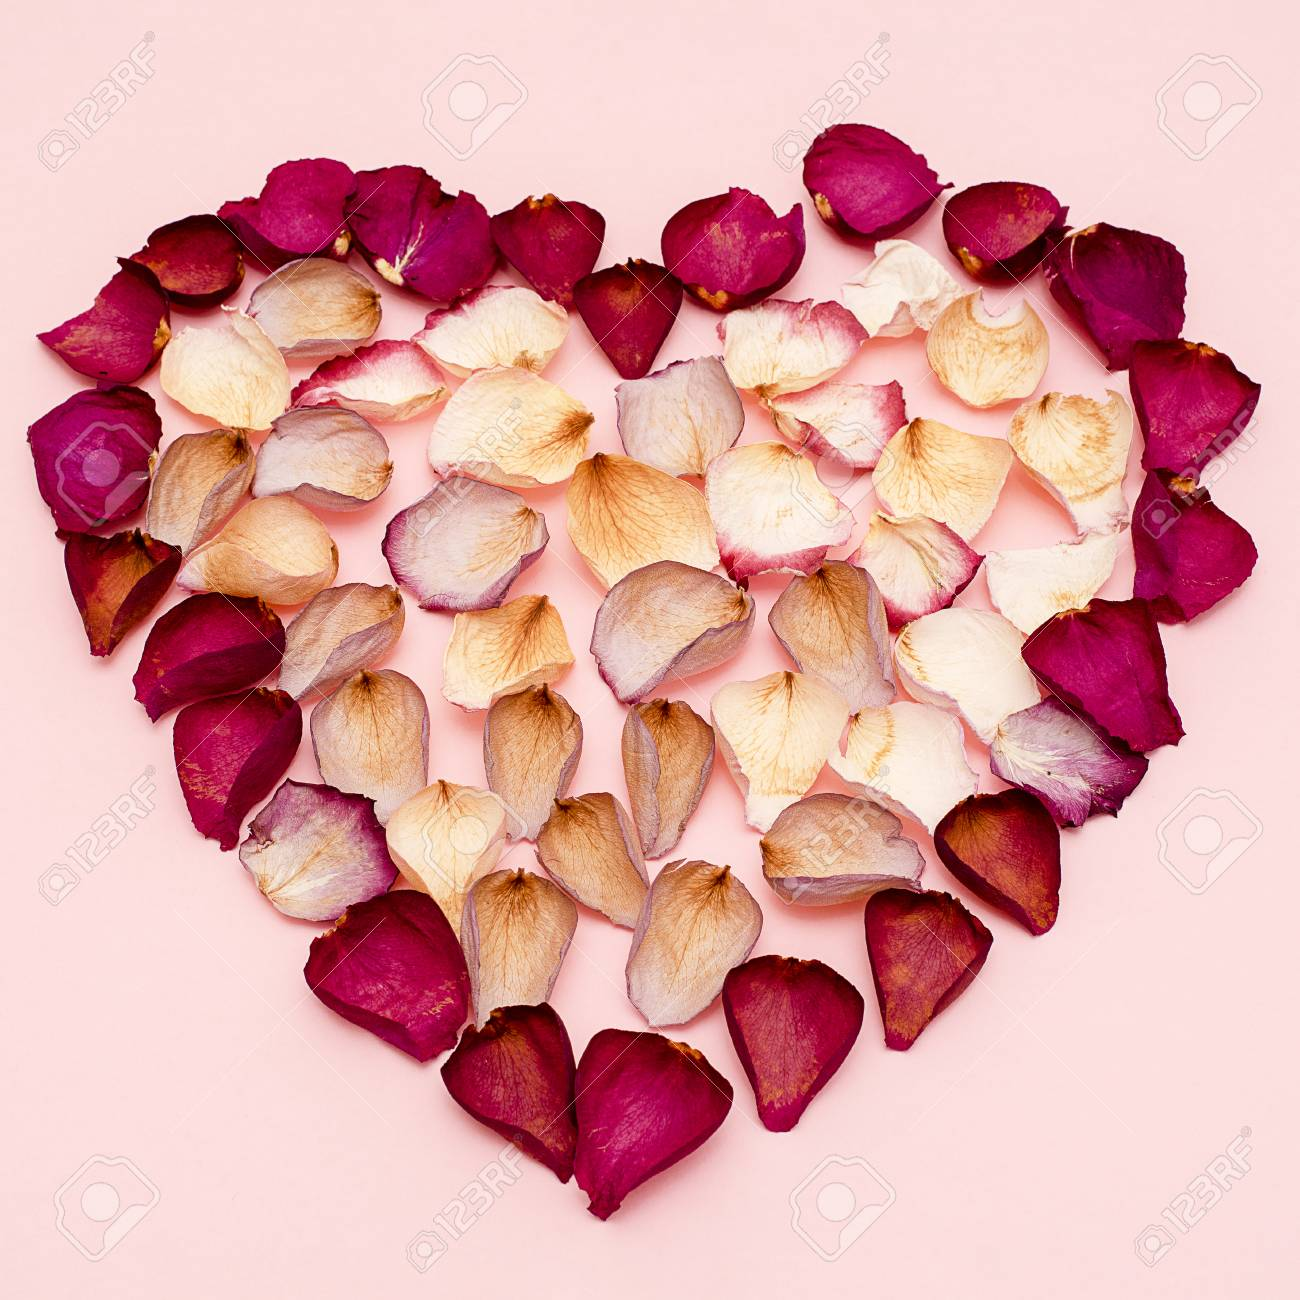 Heart shape lined with dried rose petals on pink background